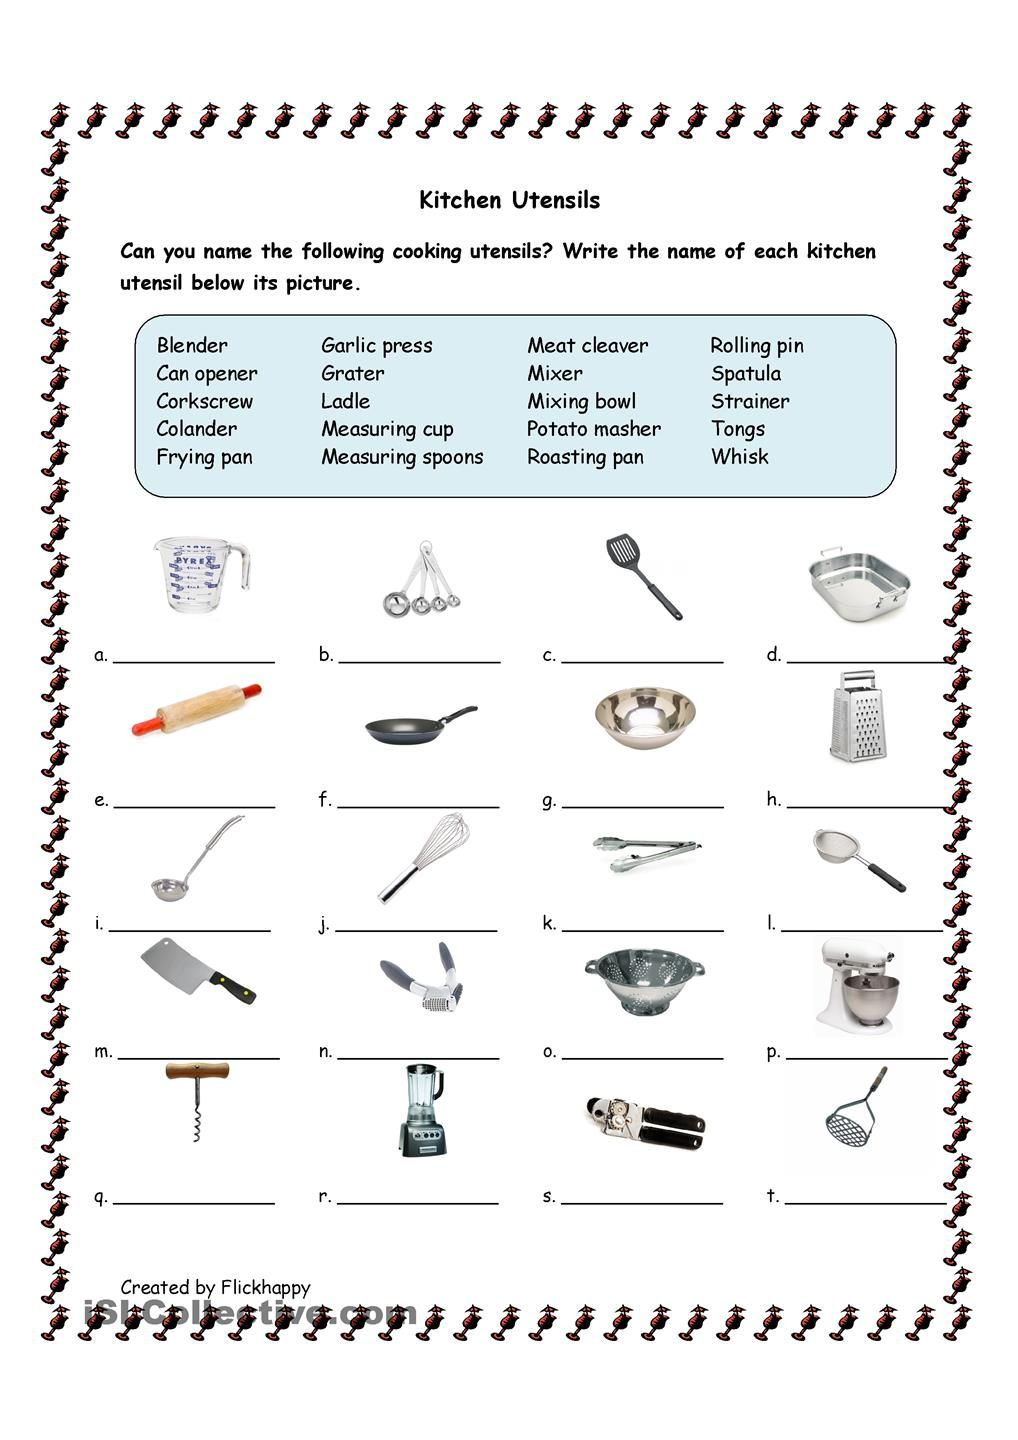 Kitchen Utensils | Facs | Cooking Classes For Kids, Kitchen Utensils | Kitchen Utensils Printable Worksheets